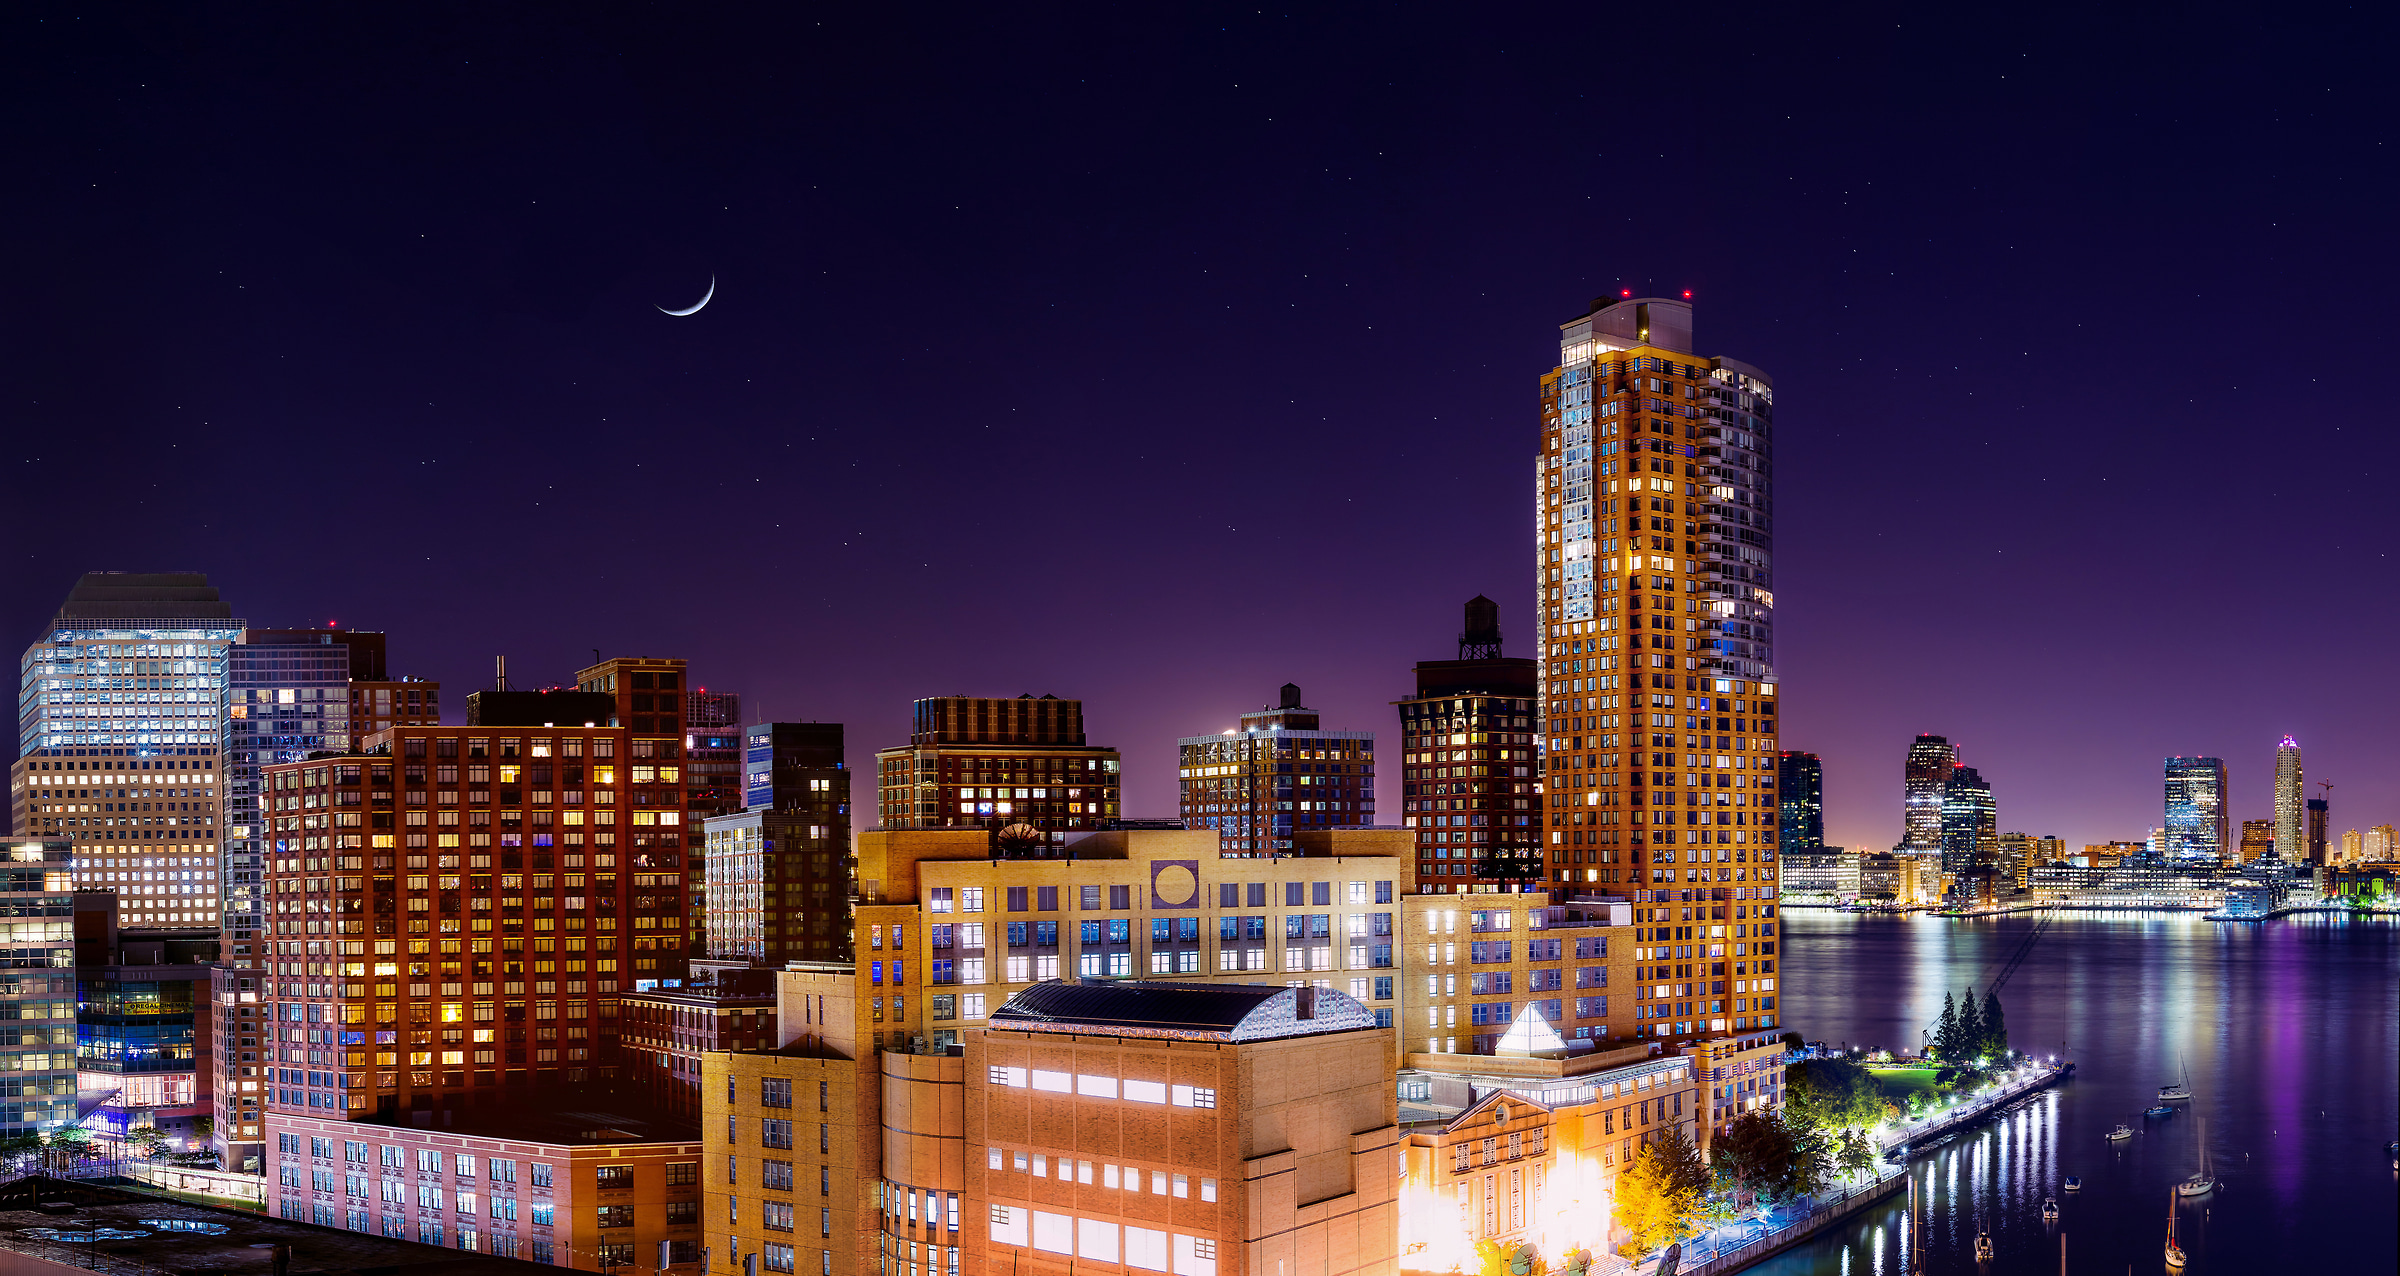 102 megapixels! A very high definition VAST photo of the Battery Park City neighborhood, Stuyvesant High School, and Tribeca Pointe on a starry night with a crescent moon; created in New York City by Dan Piech